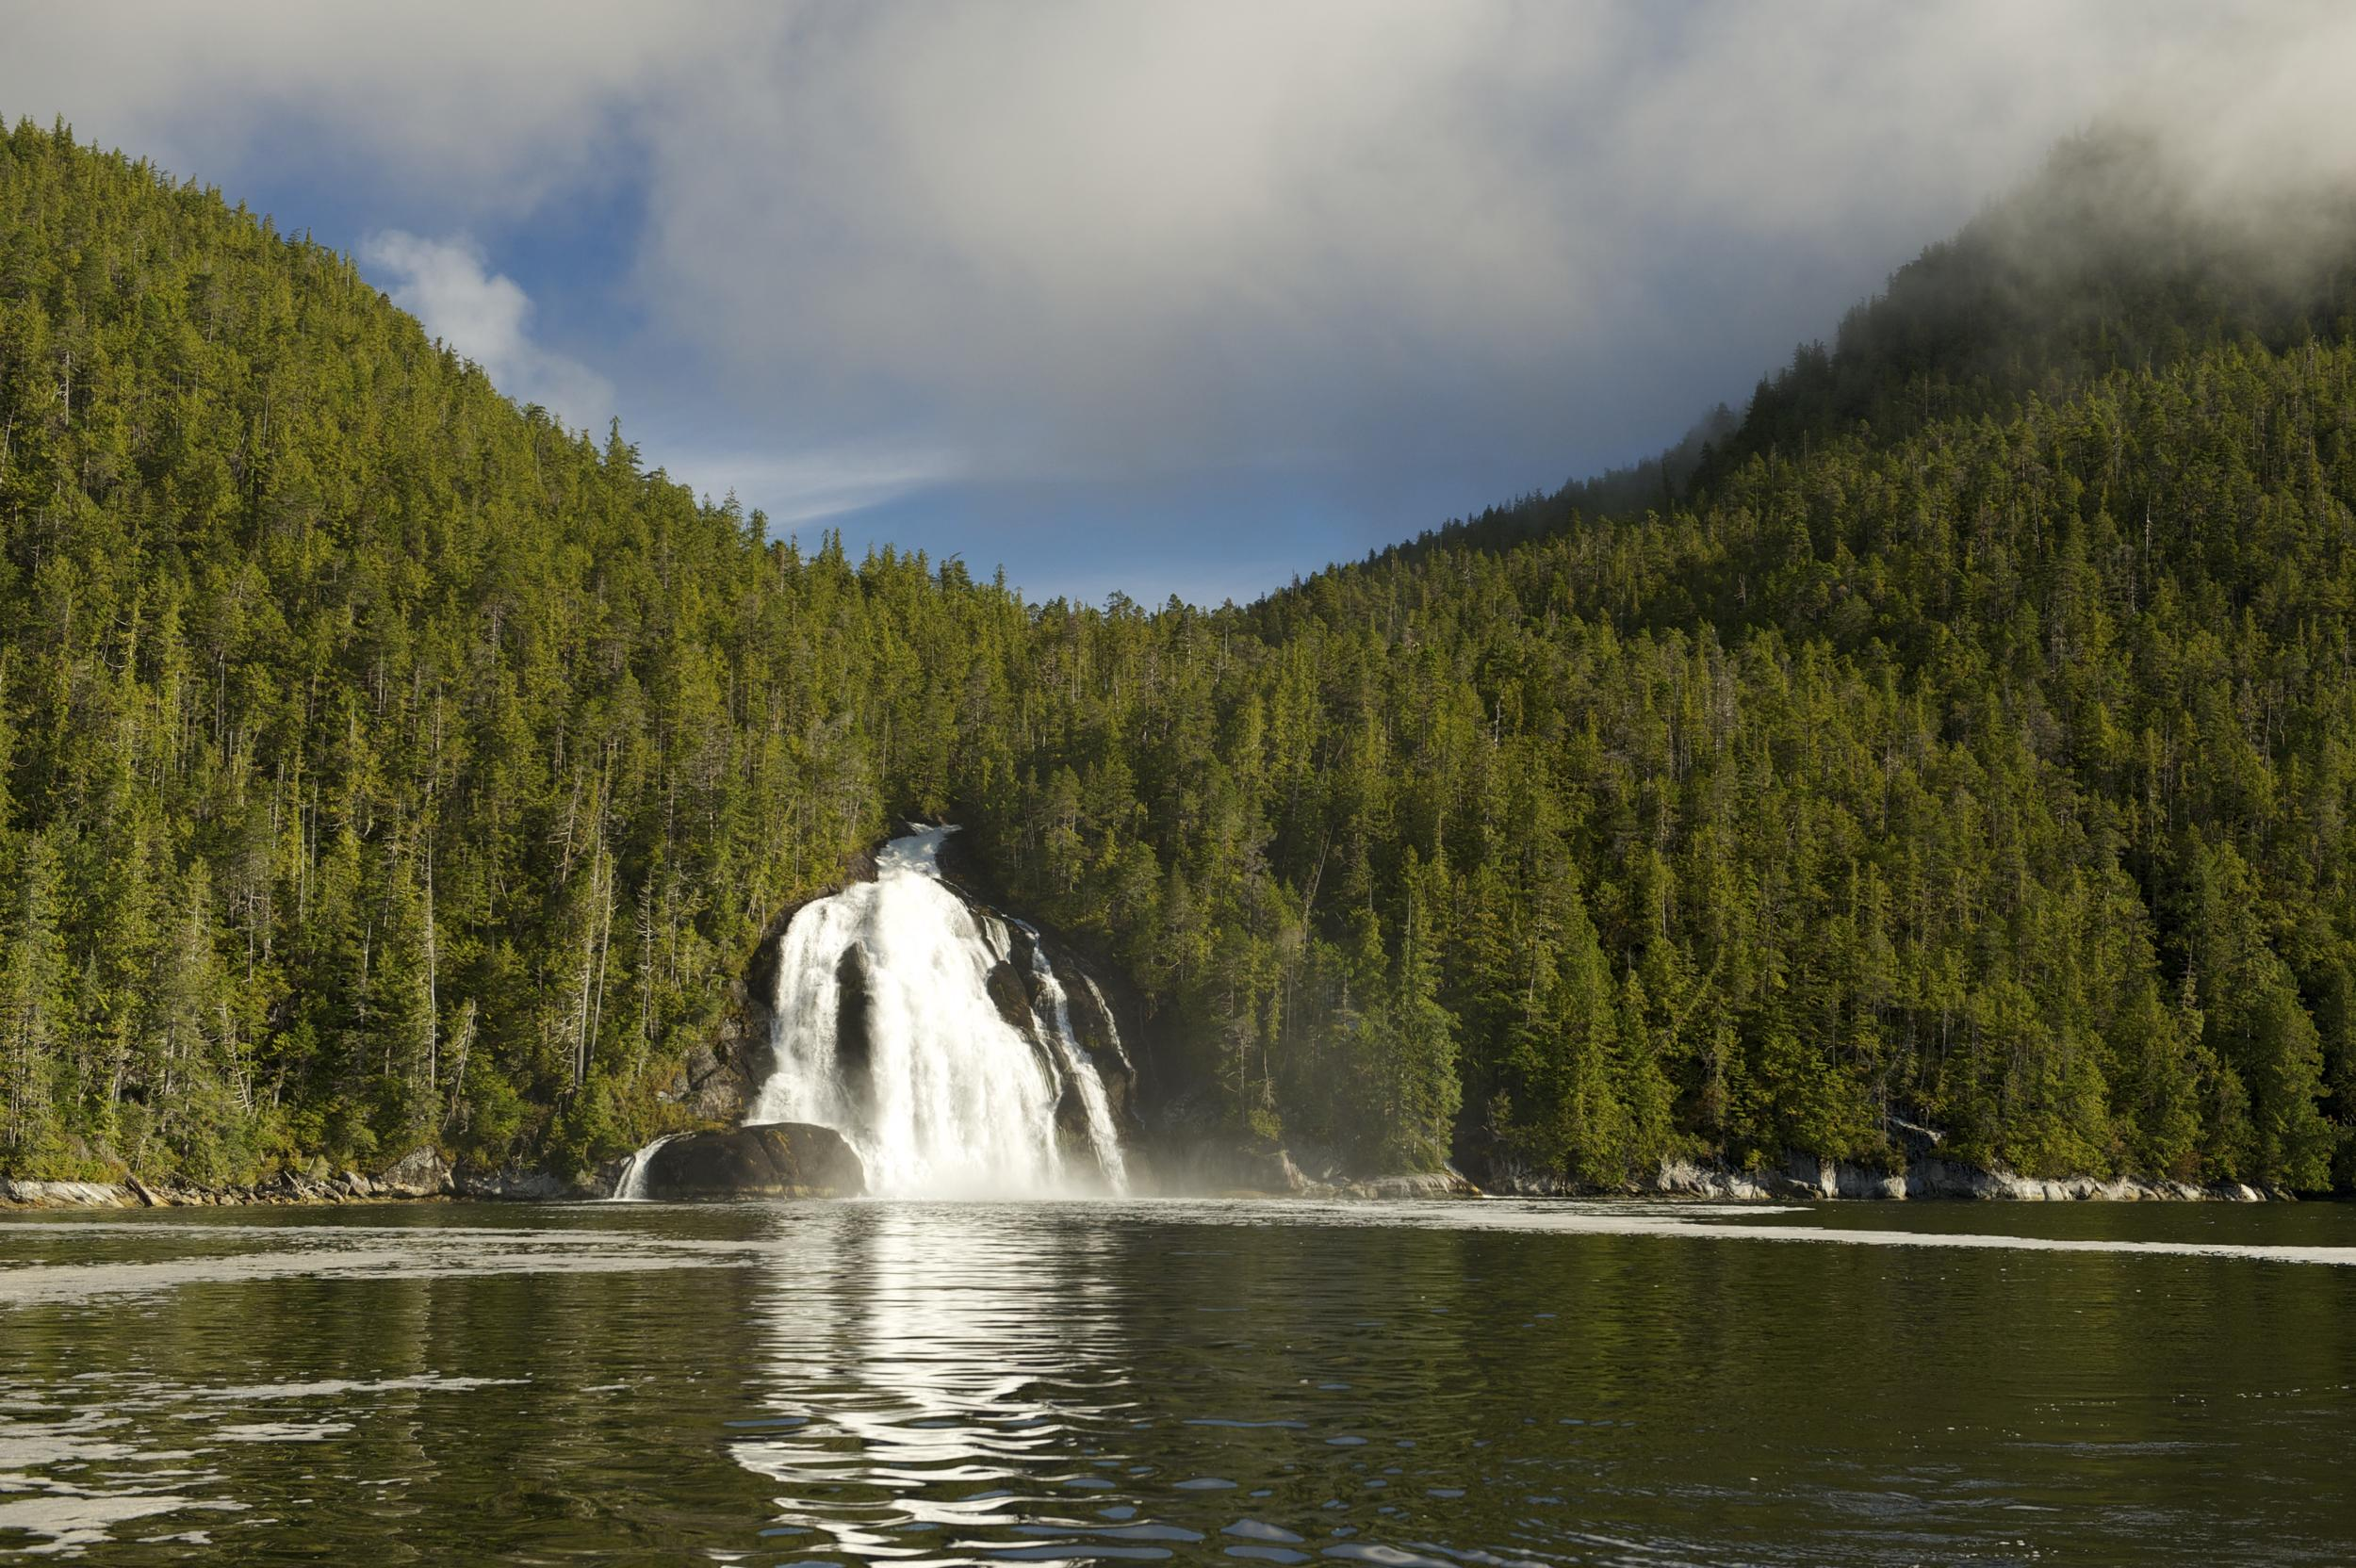 A waterfall runs out from a densely-forested hillside and into a calm lake in the Great Bear Rainforest